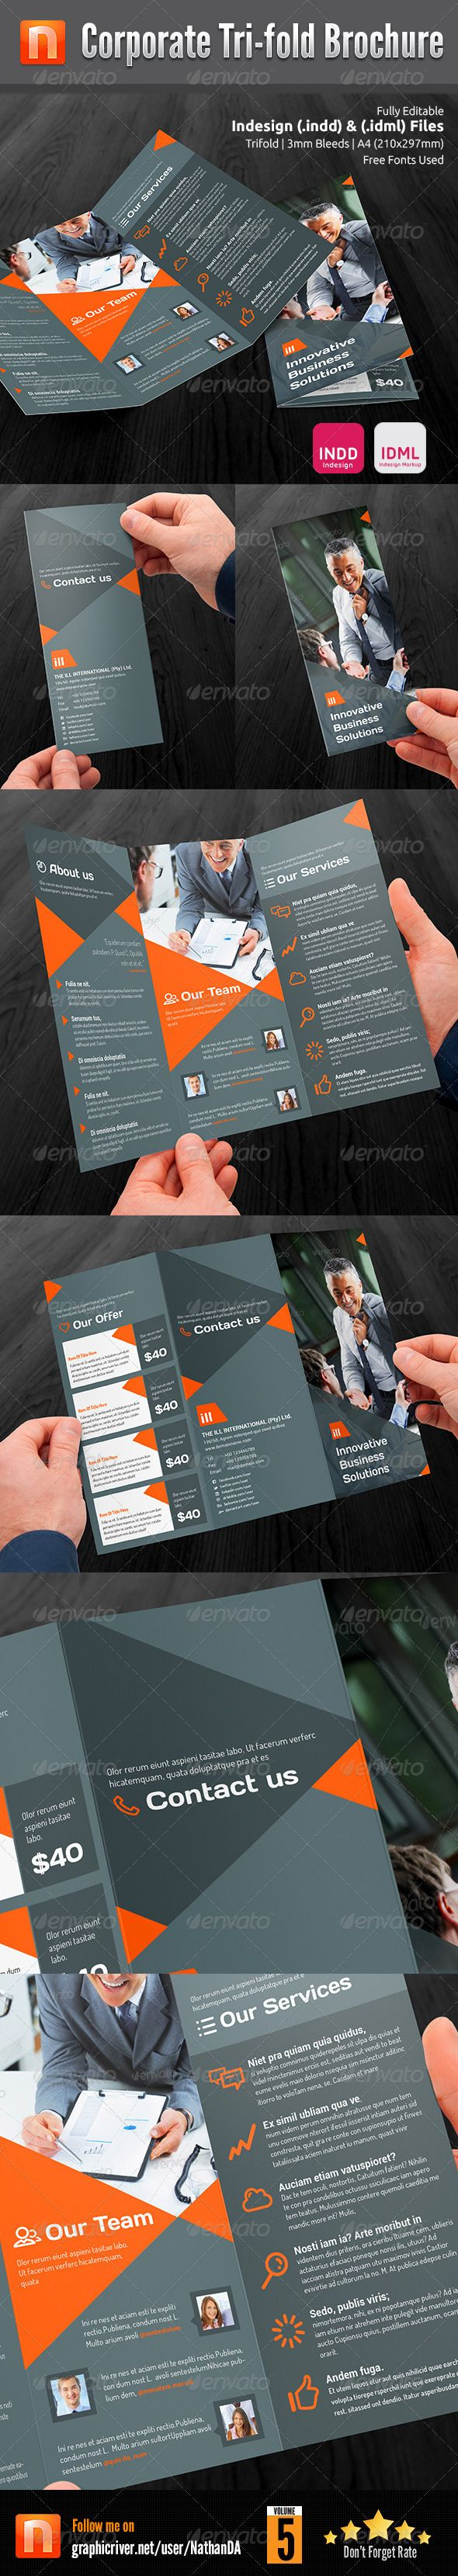 Corporate Tri-fold Brochure V5  —  InDesign Template